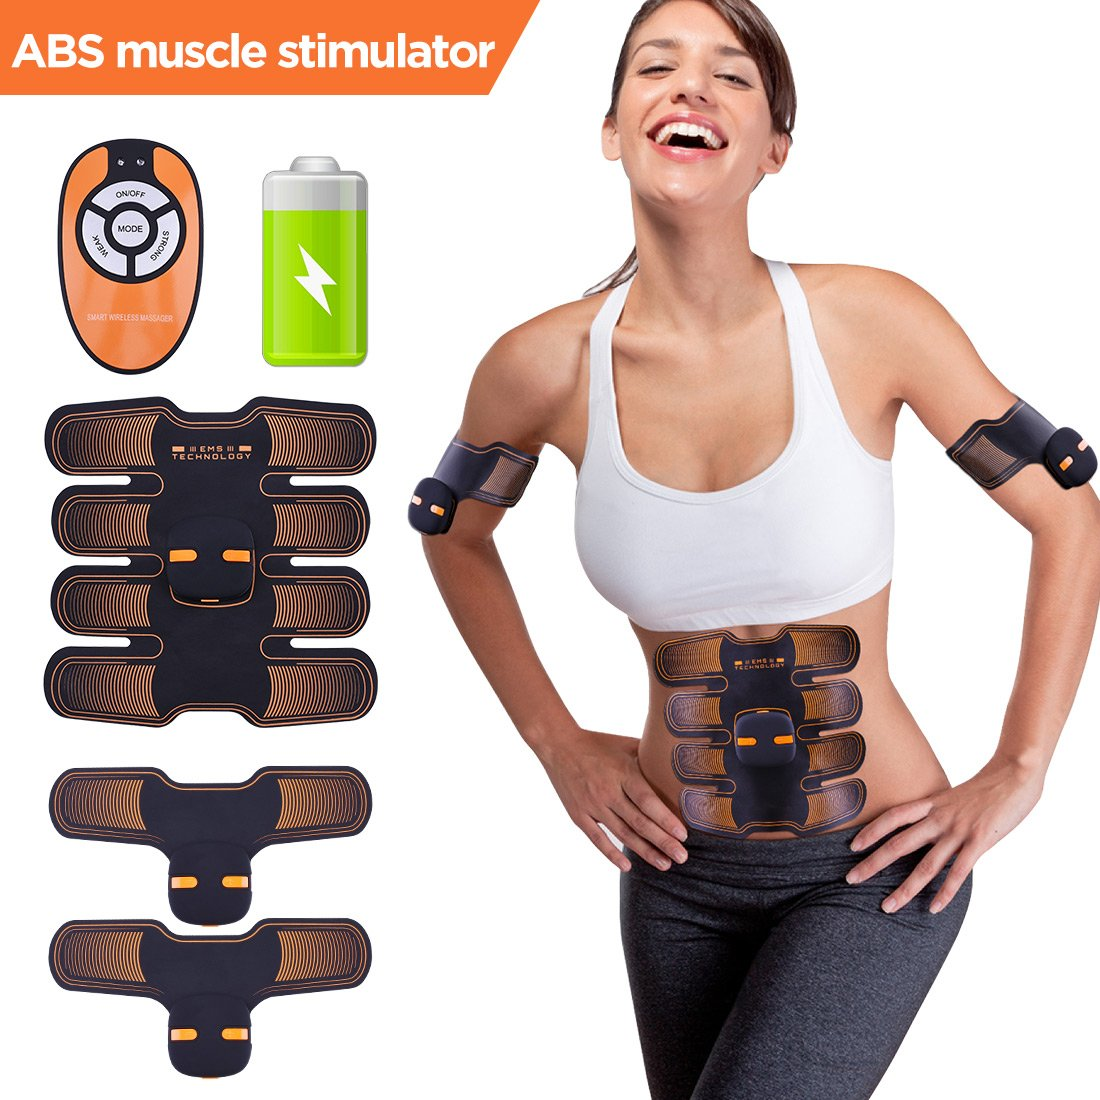 LunaLife Abs Stimulation Belt Magnetic Waves Portable Muscle Trainer Professional Muscle Toner Workouts Home Office Fitness Equipment for Man and Women by LunaLife